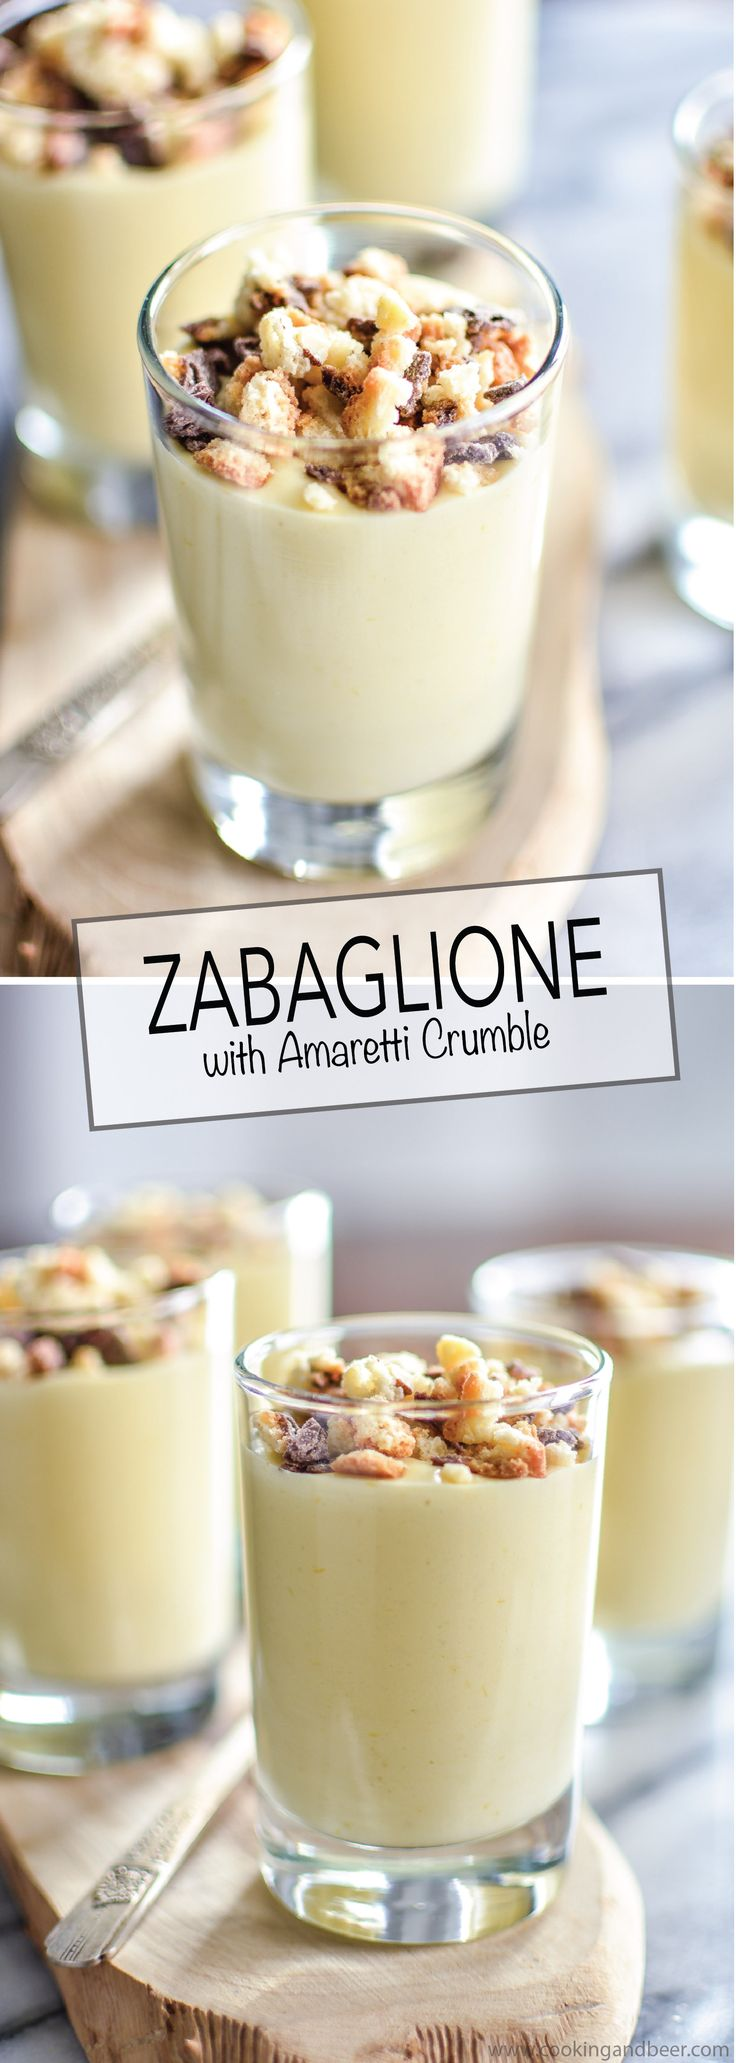 Italian Zabaglione with Biscotti Crumble is a great dessert recipe for a dinner party, as you can make it ahead and it's quick to whip up! | www.cookingandbeer.com